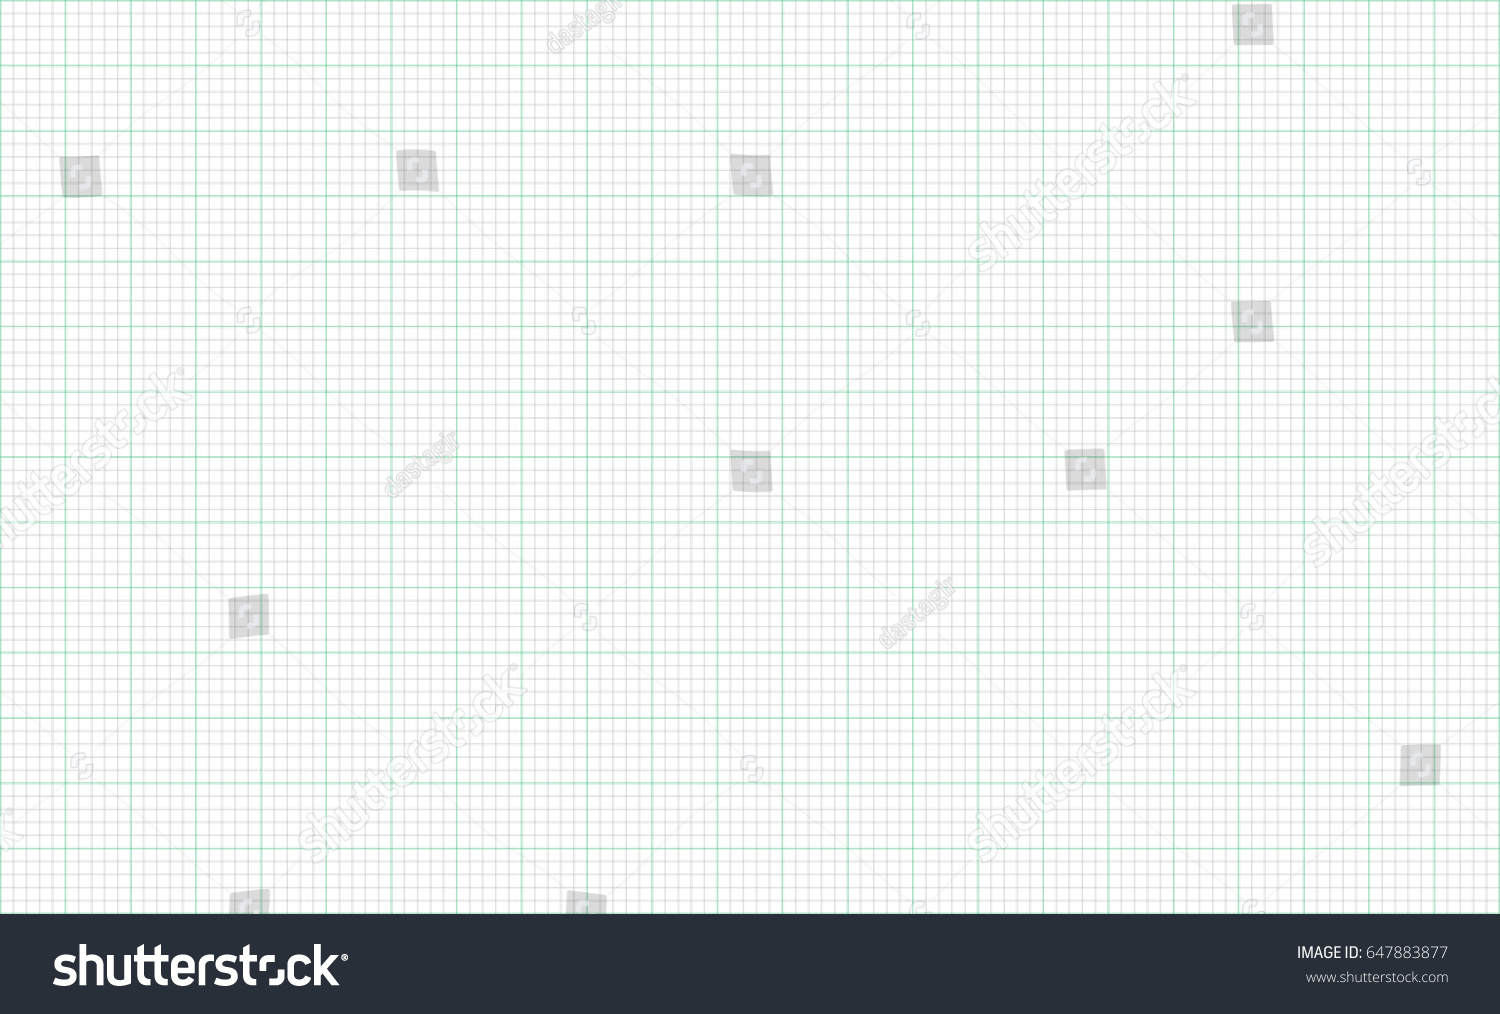 worksheet X And Y Axis Graph Paper graph paper grid stock vector 647883877 shutterstock grid